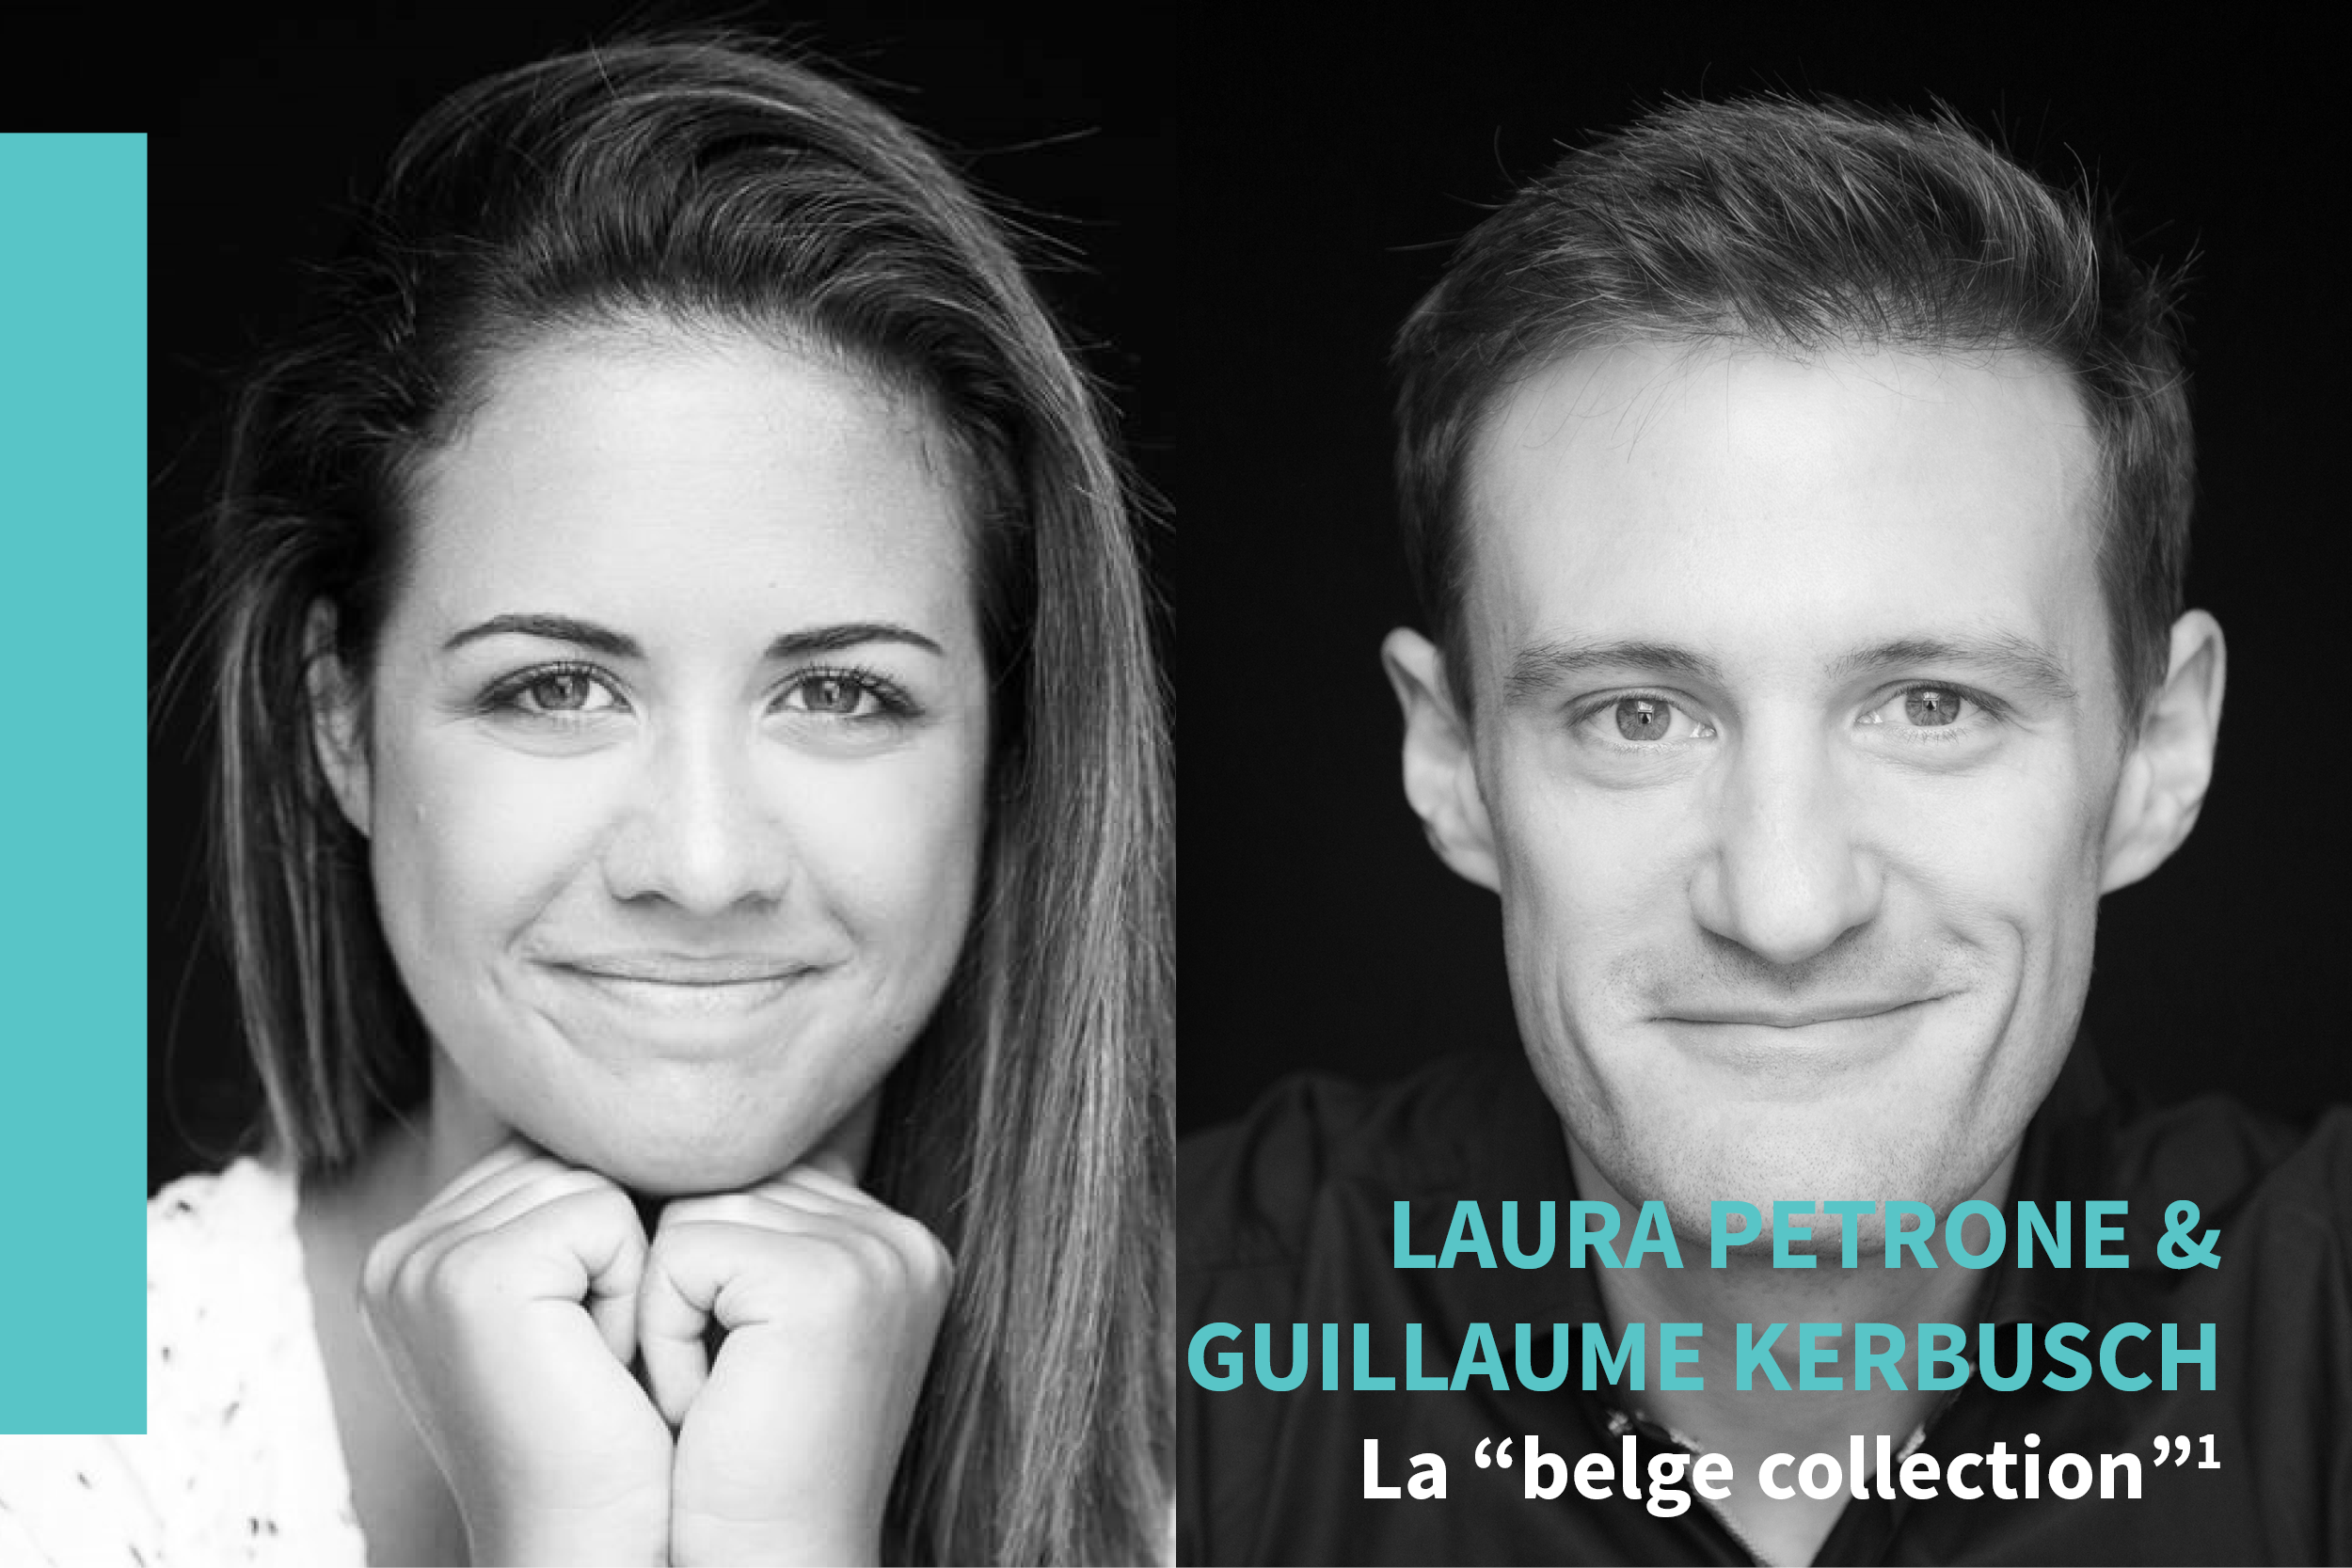 La « belge collection », de Laura Petrone & Guillaume Kerbusch